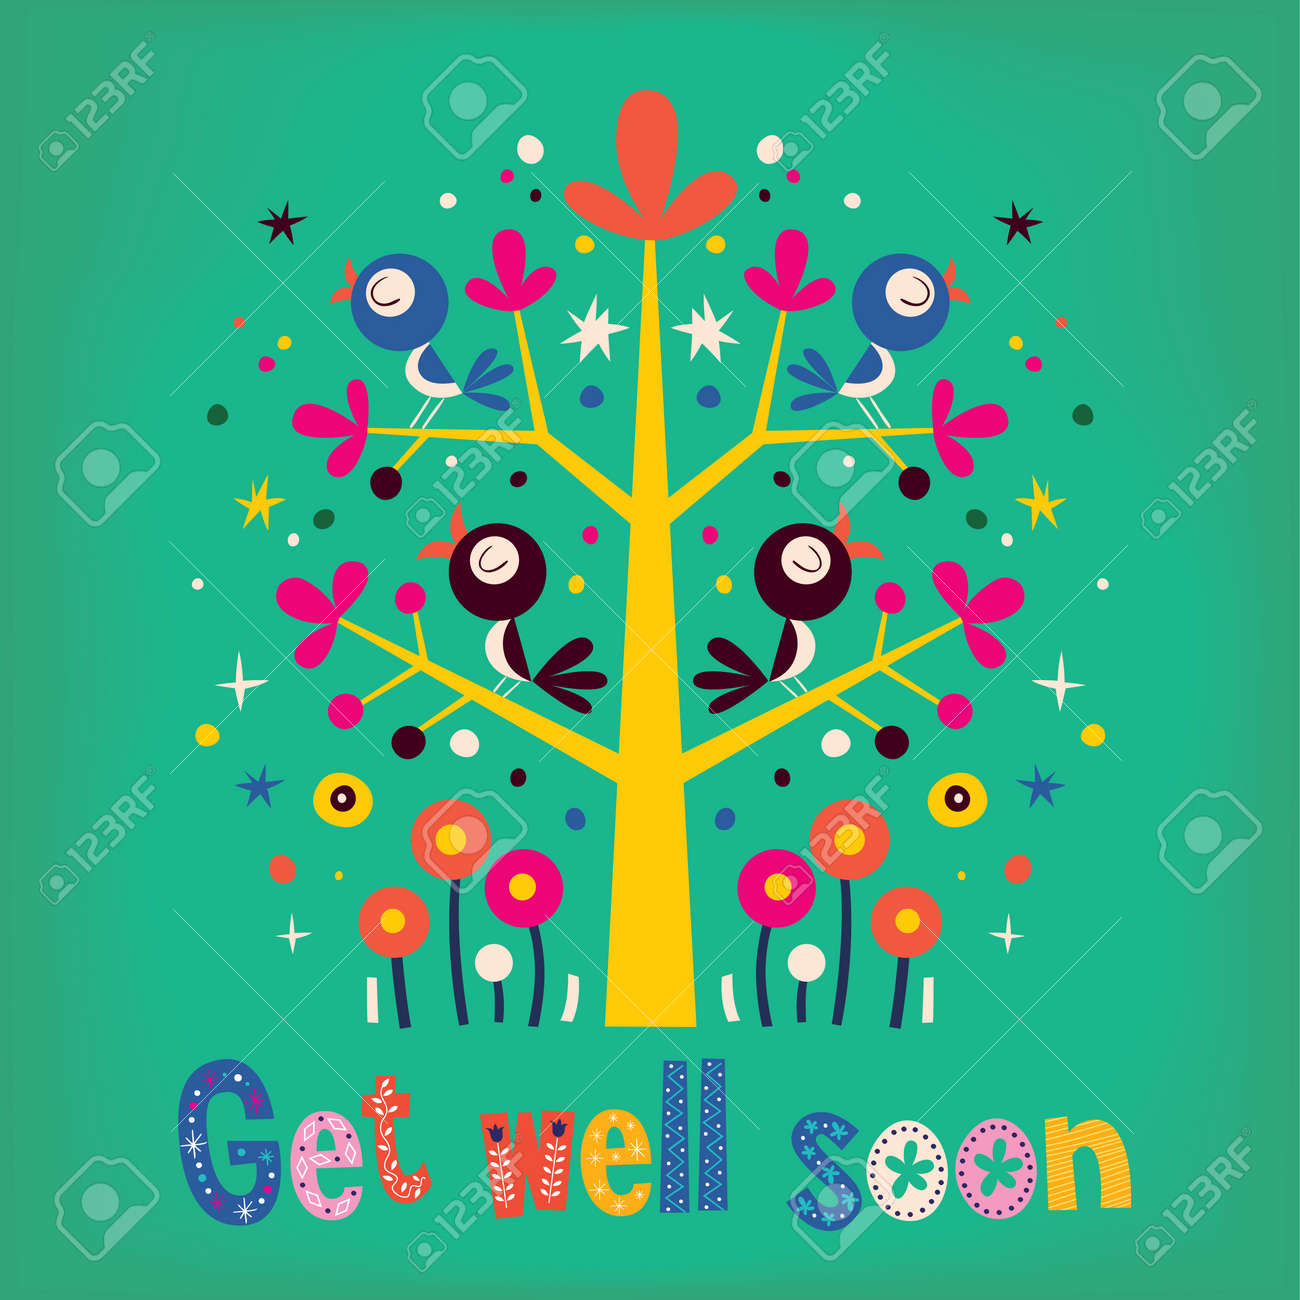 get well soon card royalty free cliparts vectors and stock